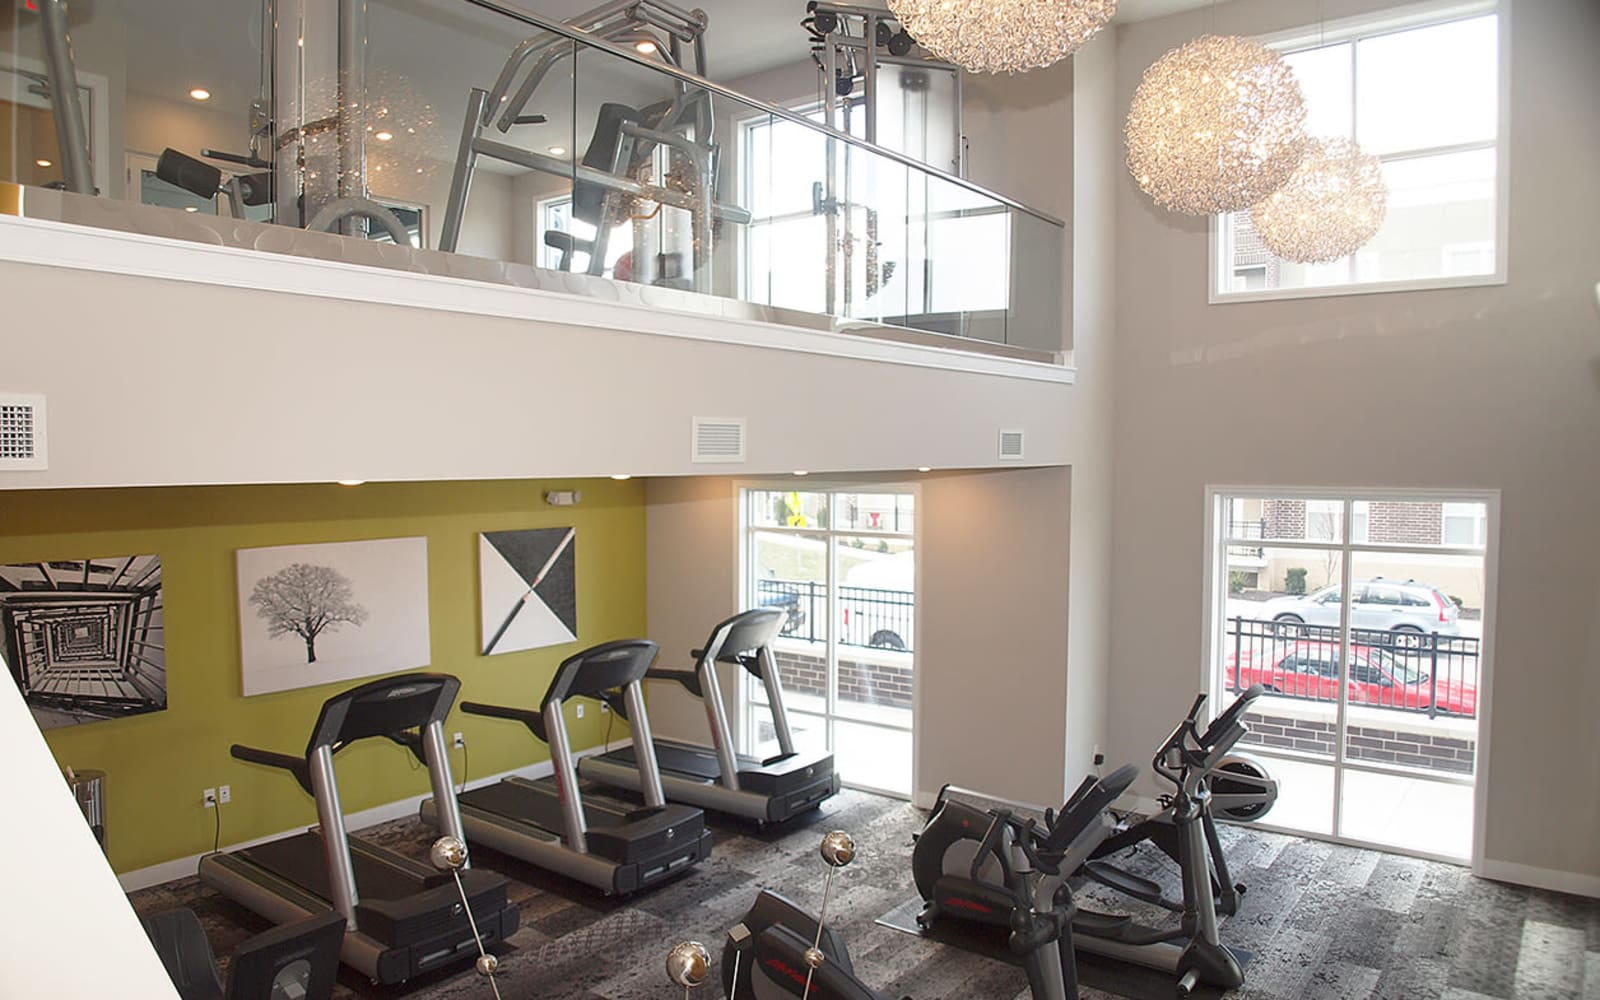 Fitness center at Allure Apartments in Centerville, Ohio